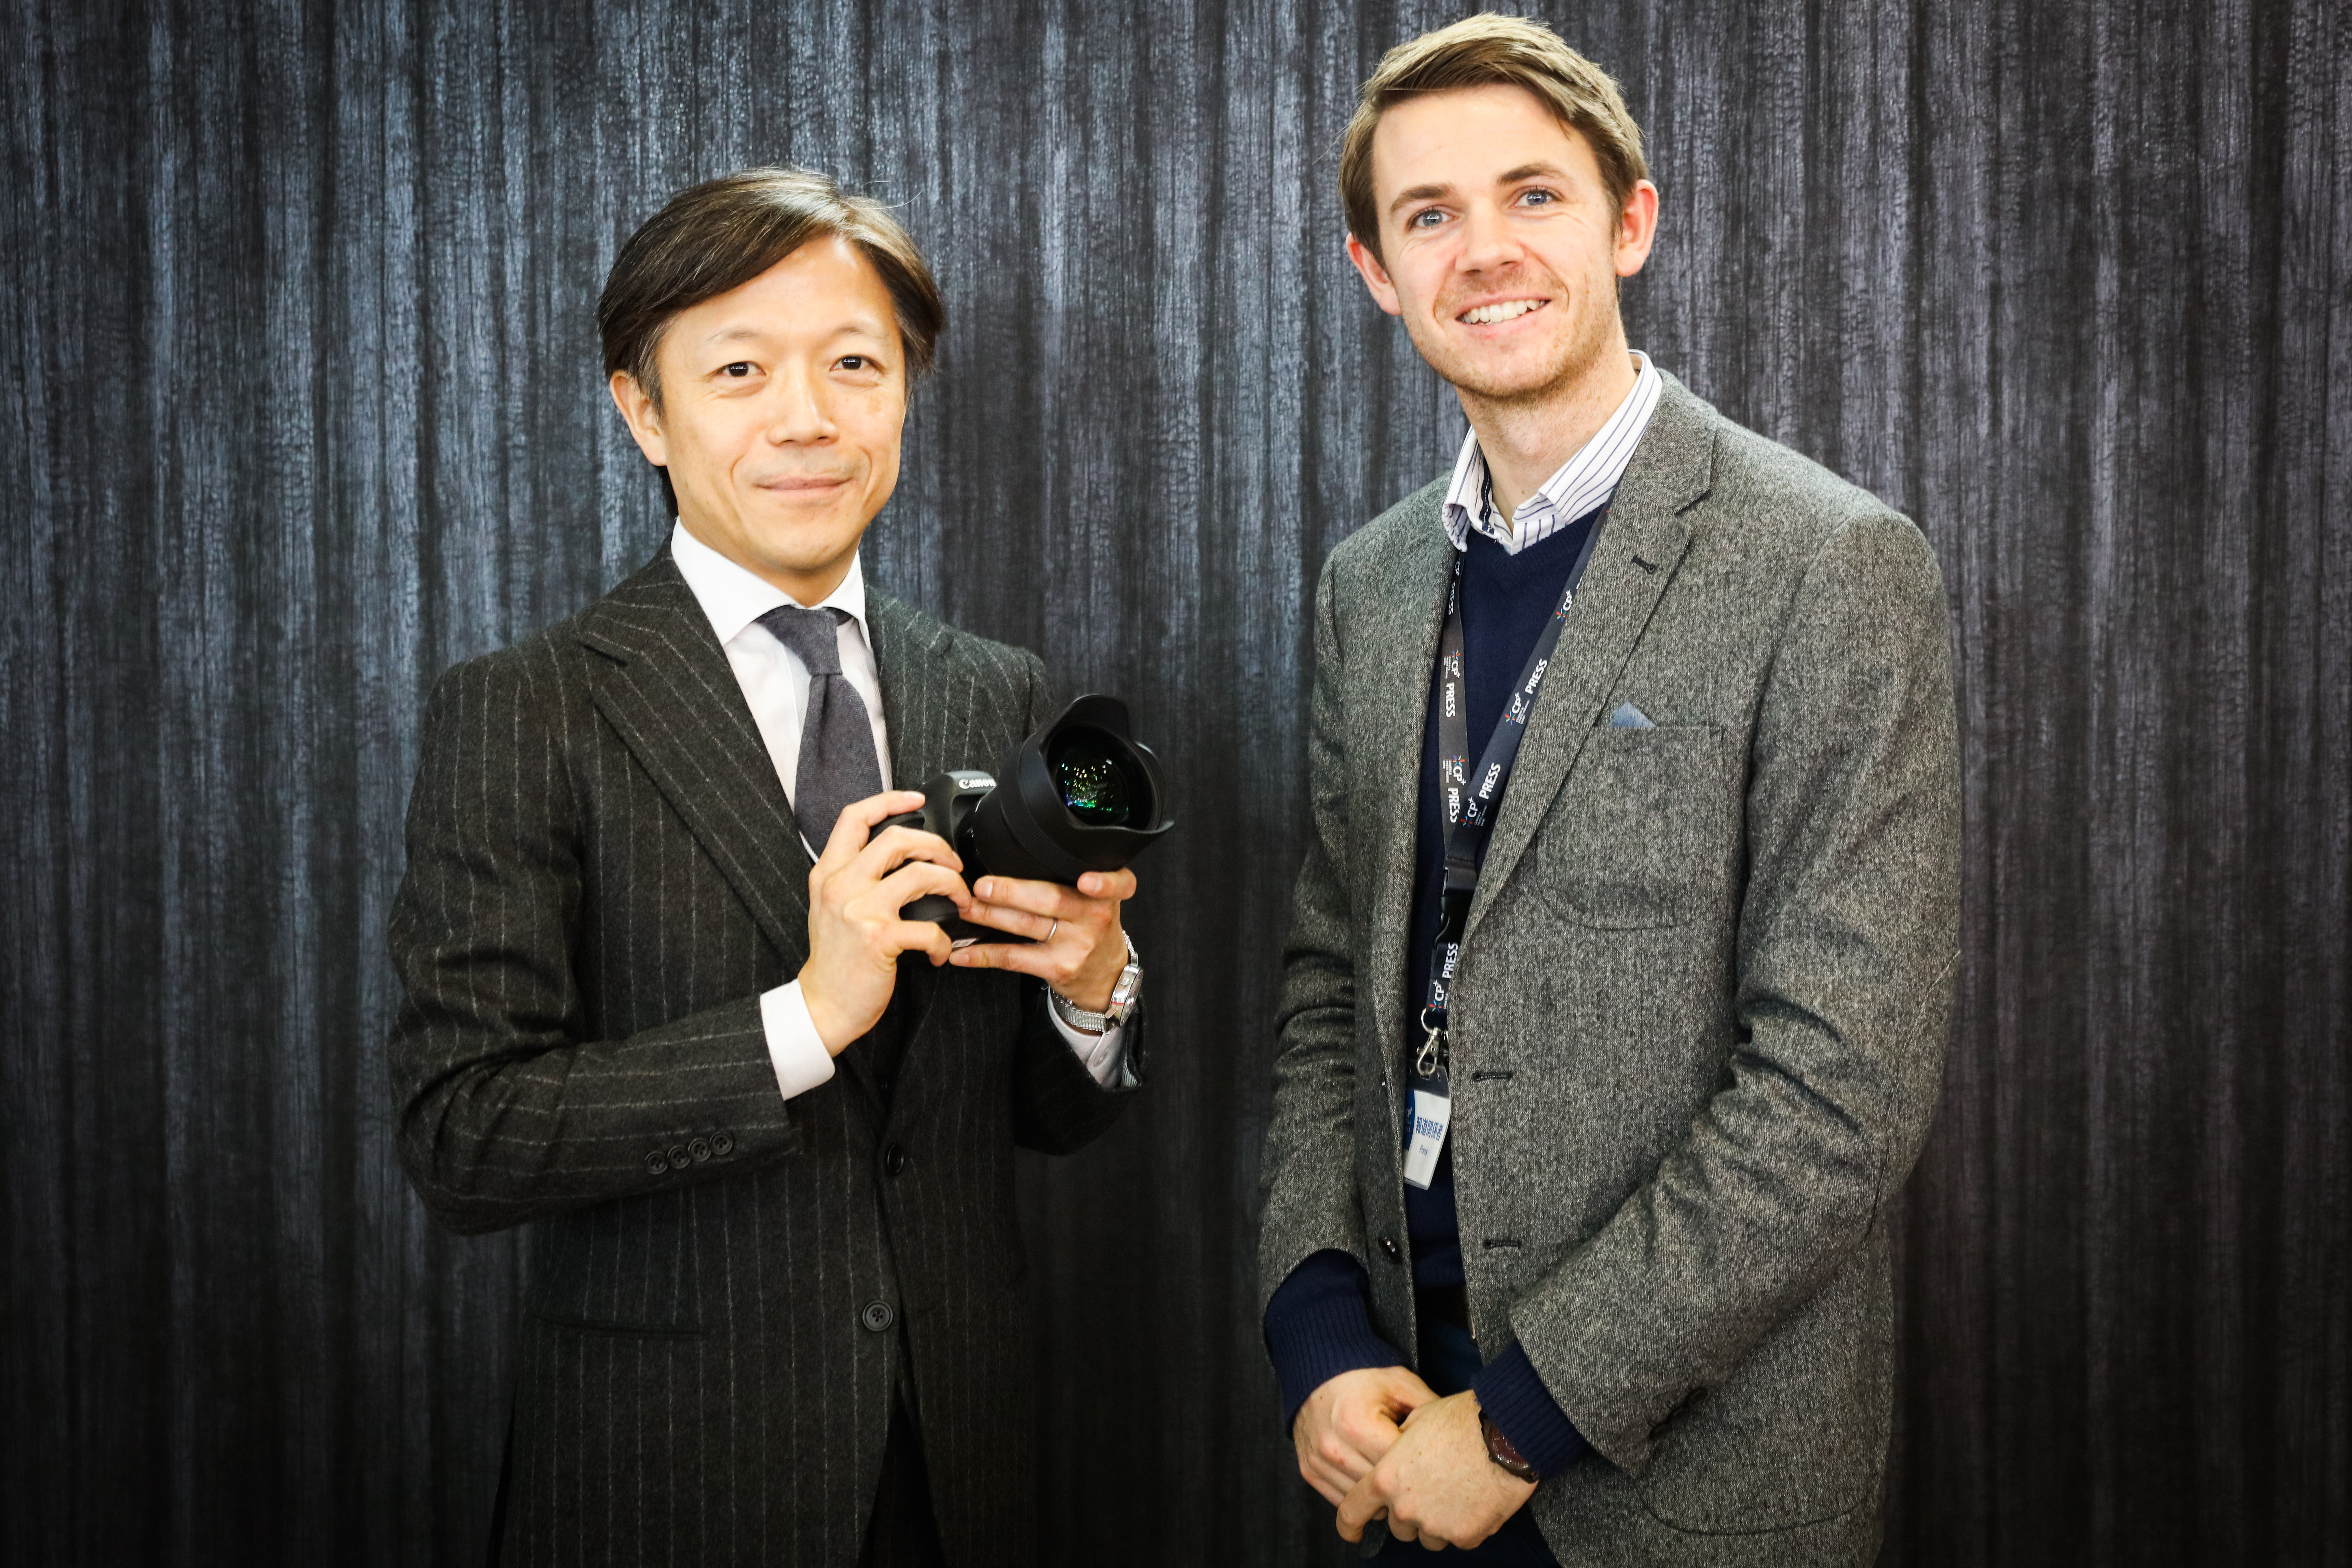 INTERVIEW CP+ 2017: Mr Kazuto Yamaki, CEO of Sigma 'We will adapt our services to the market trend'